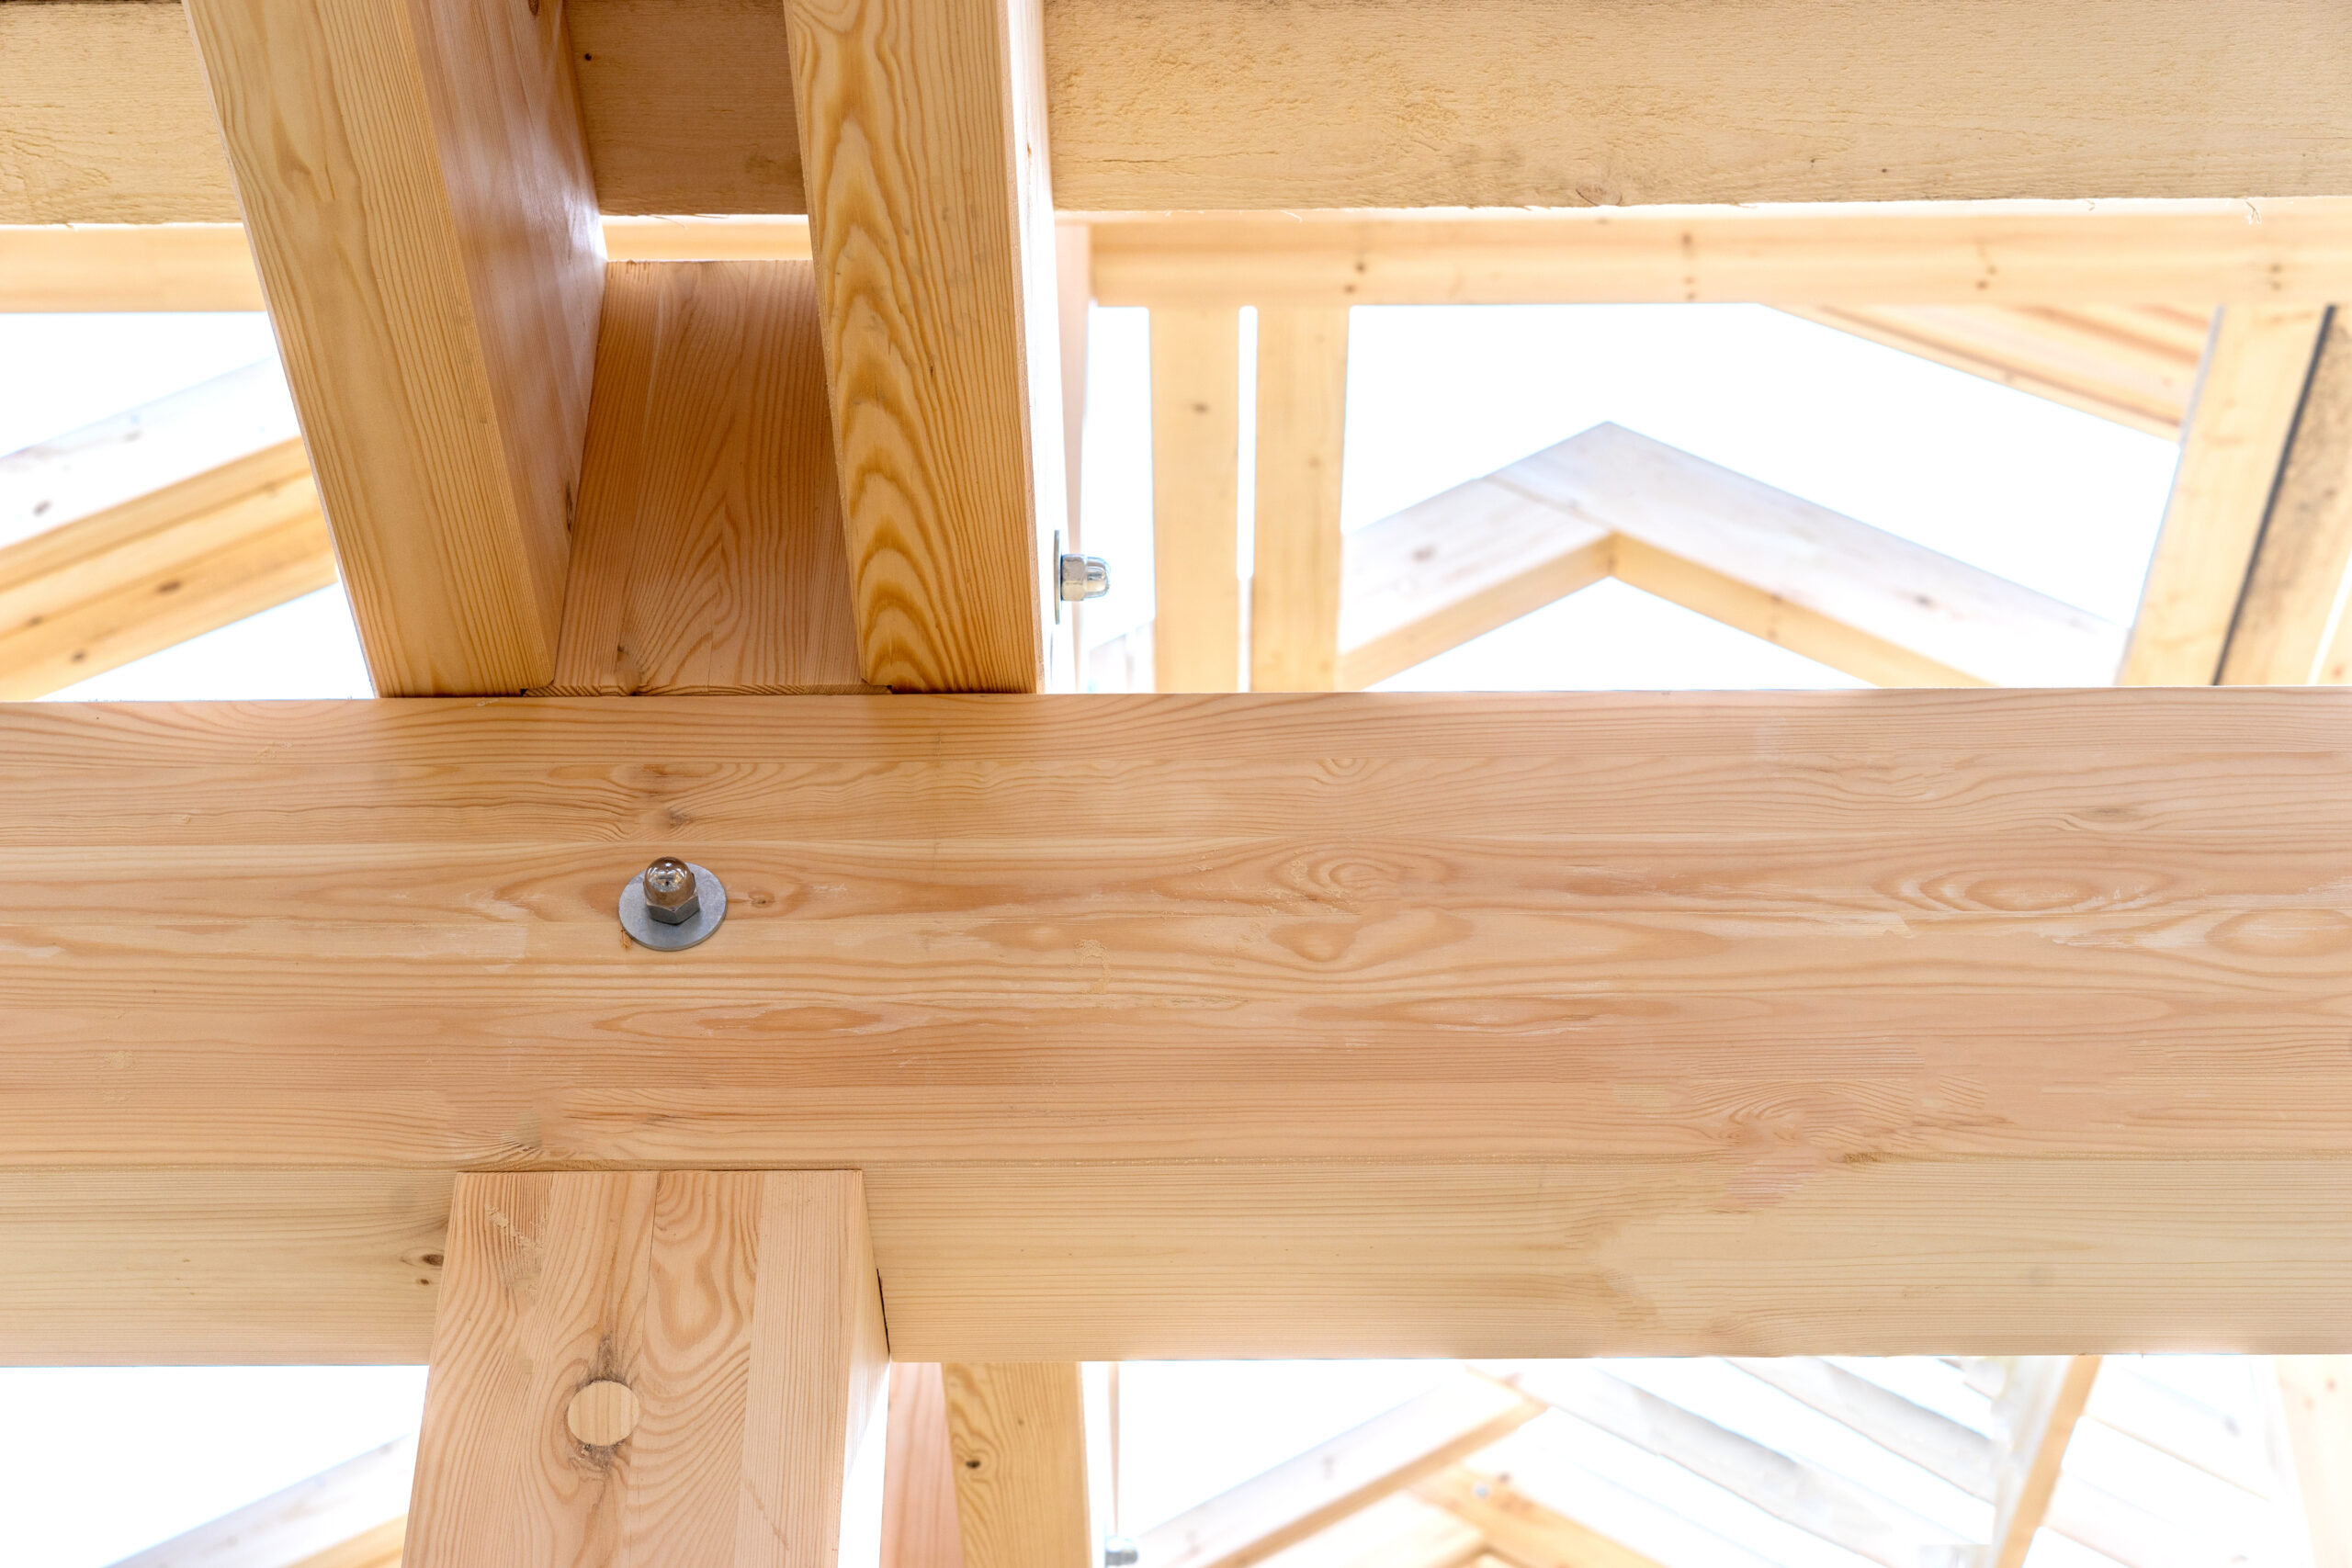 Fragment of a wooden house. Fastening of beams of a building. Fragment of building a house. Connections of wooden structures. Building concept.